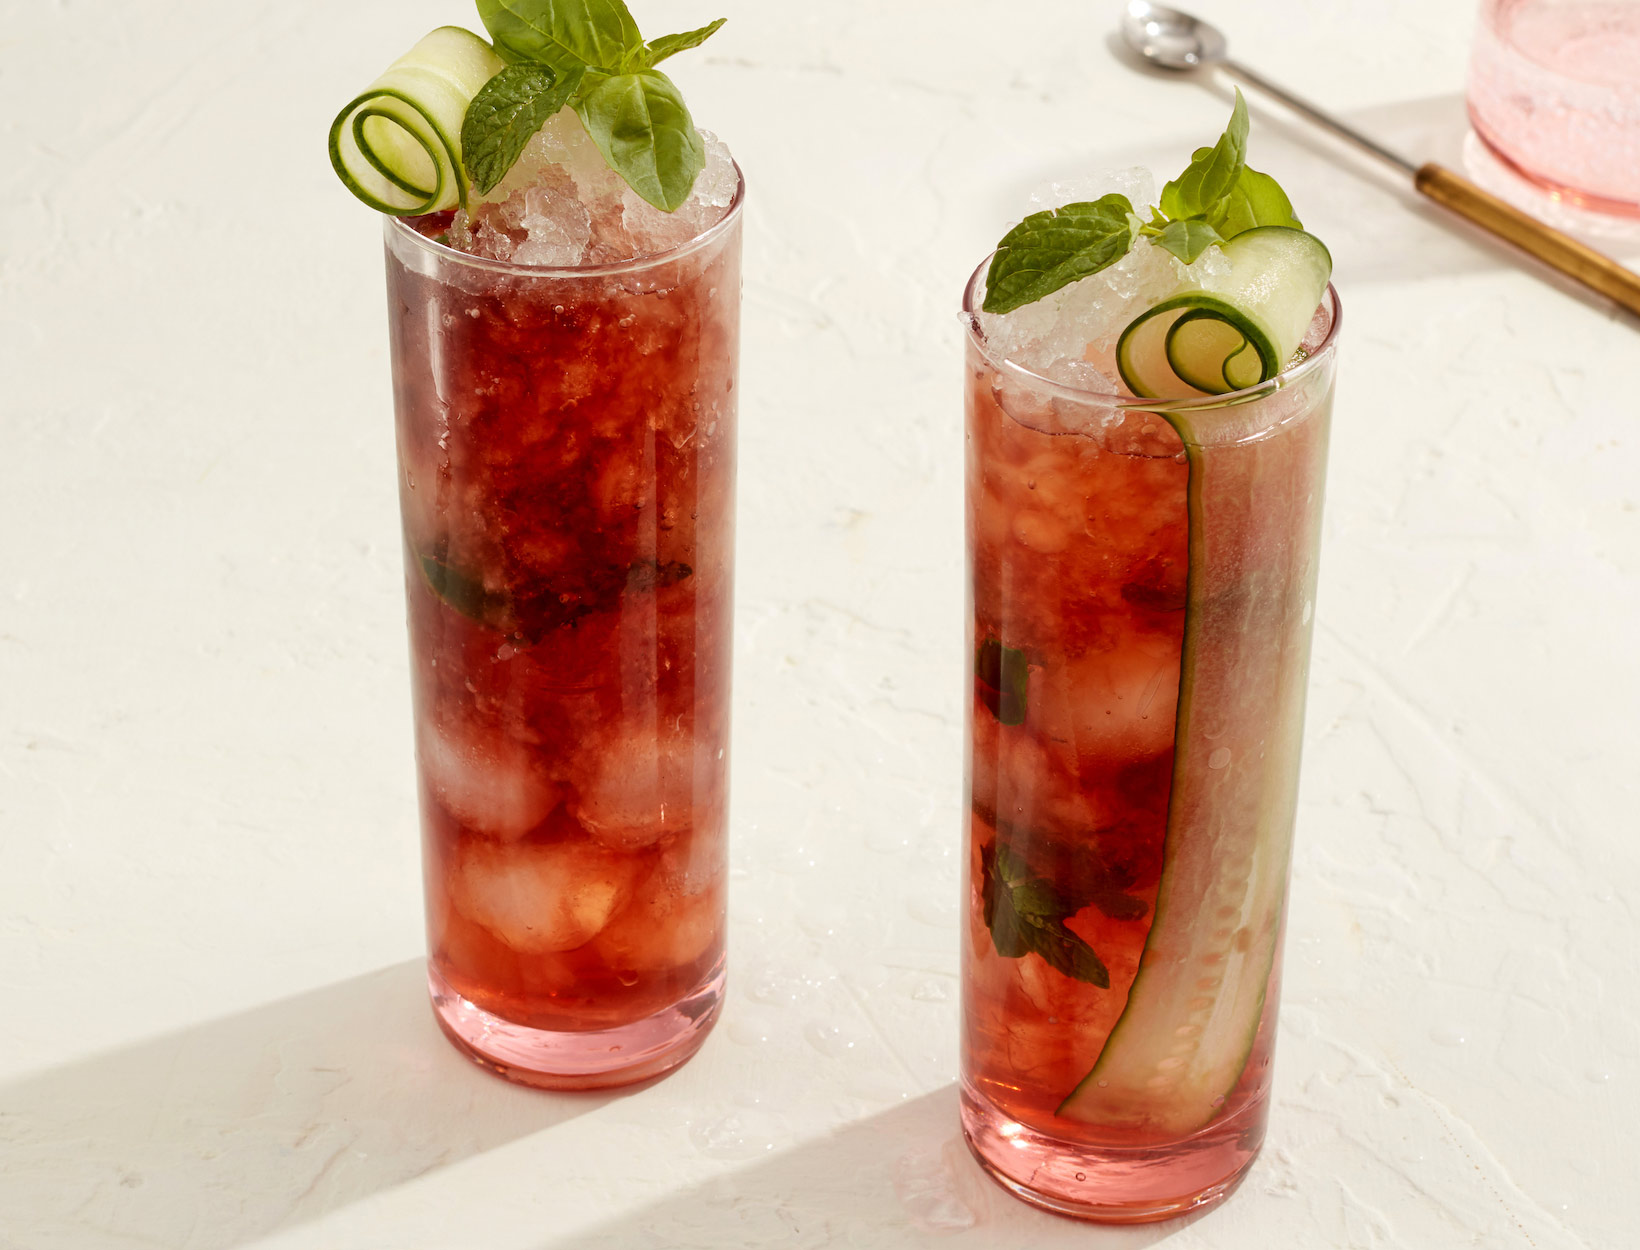 Not a Pimm's Cup